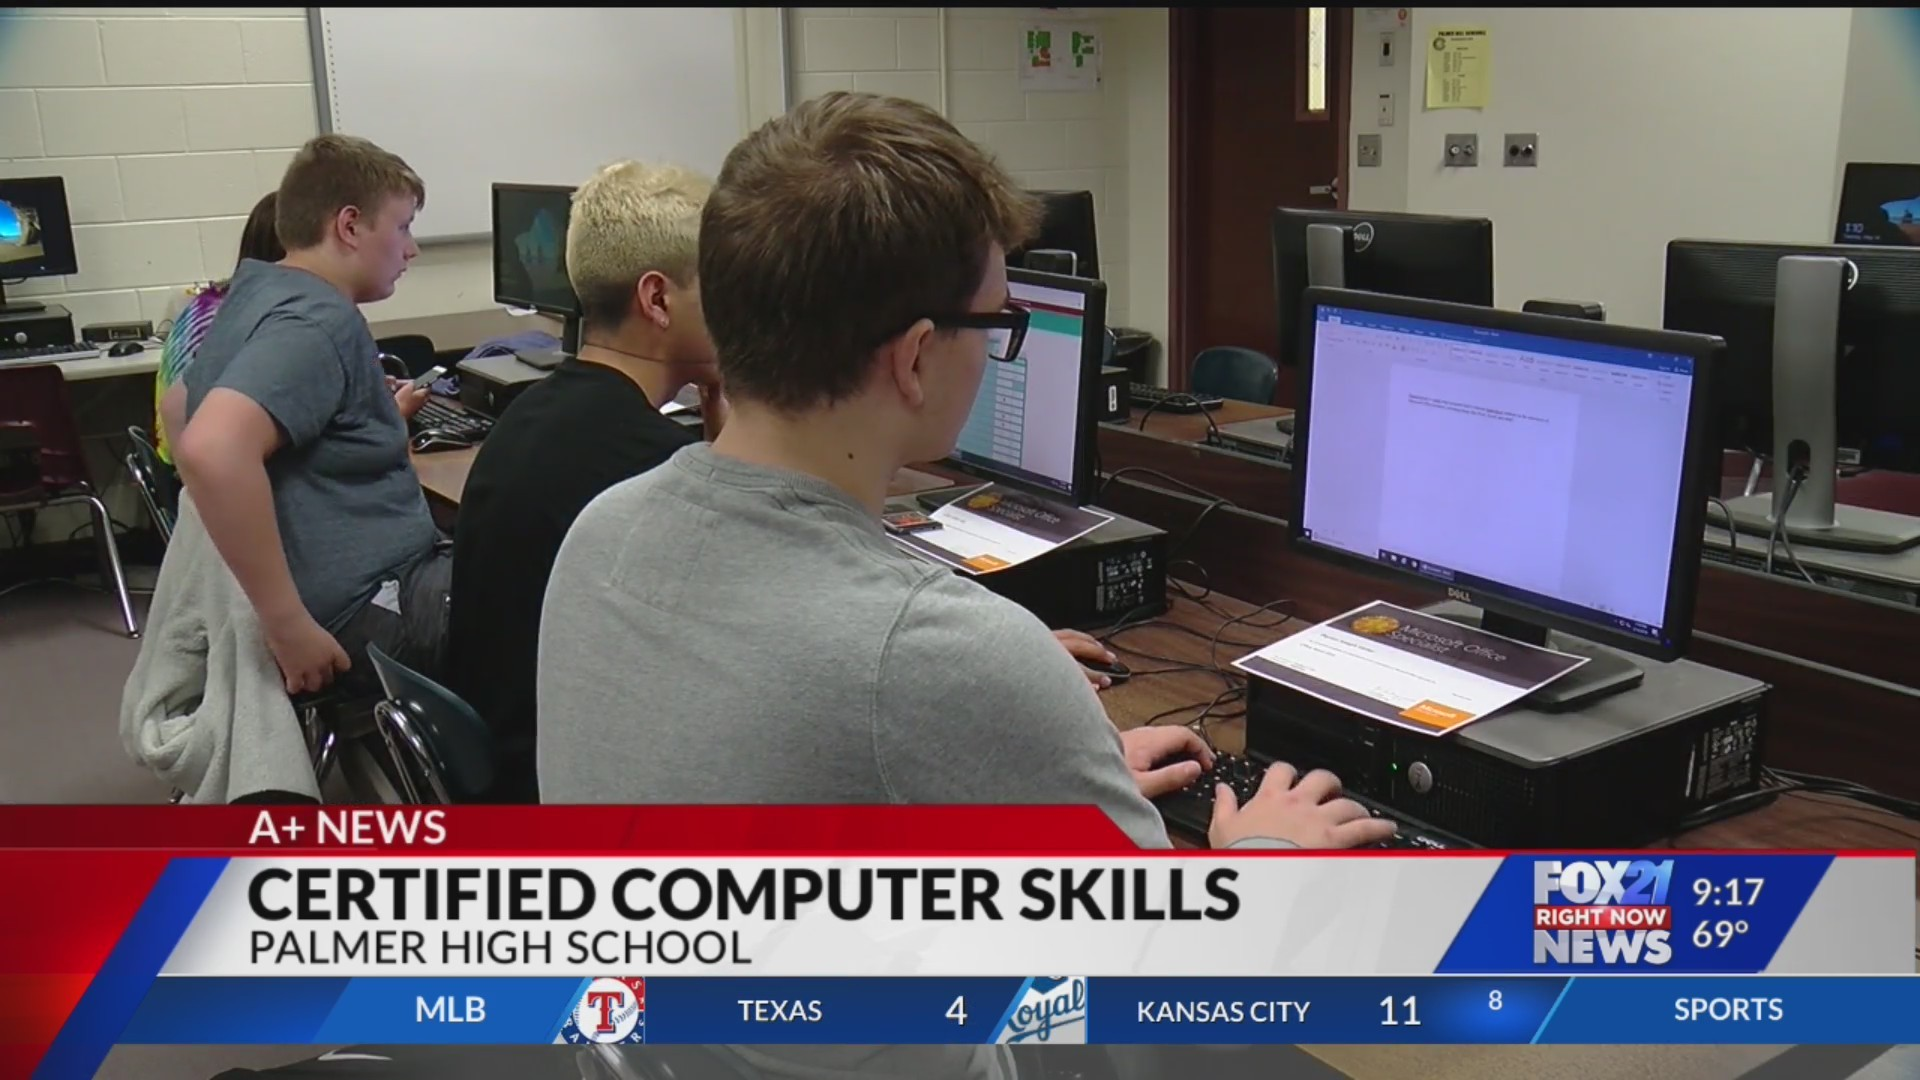 Palmer High School students work toward Office certifications